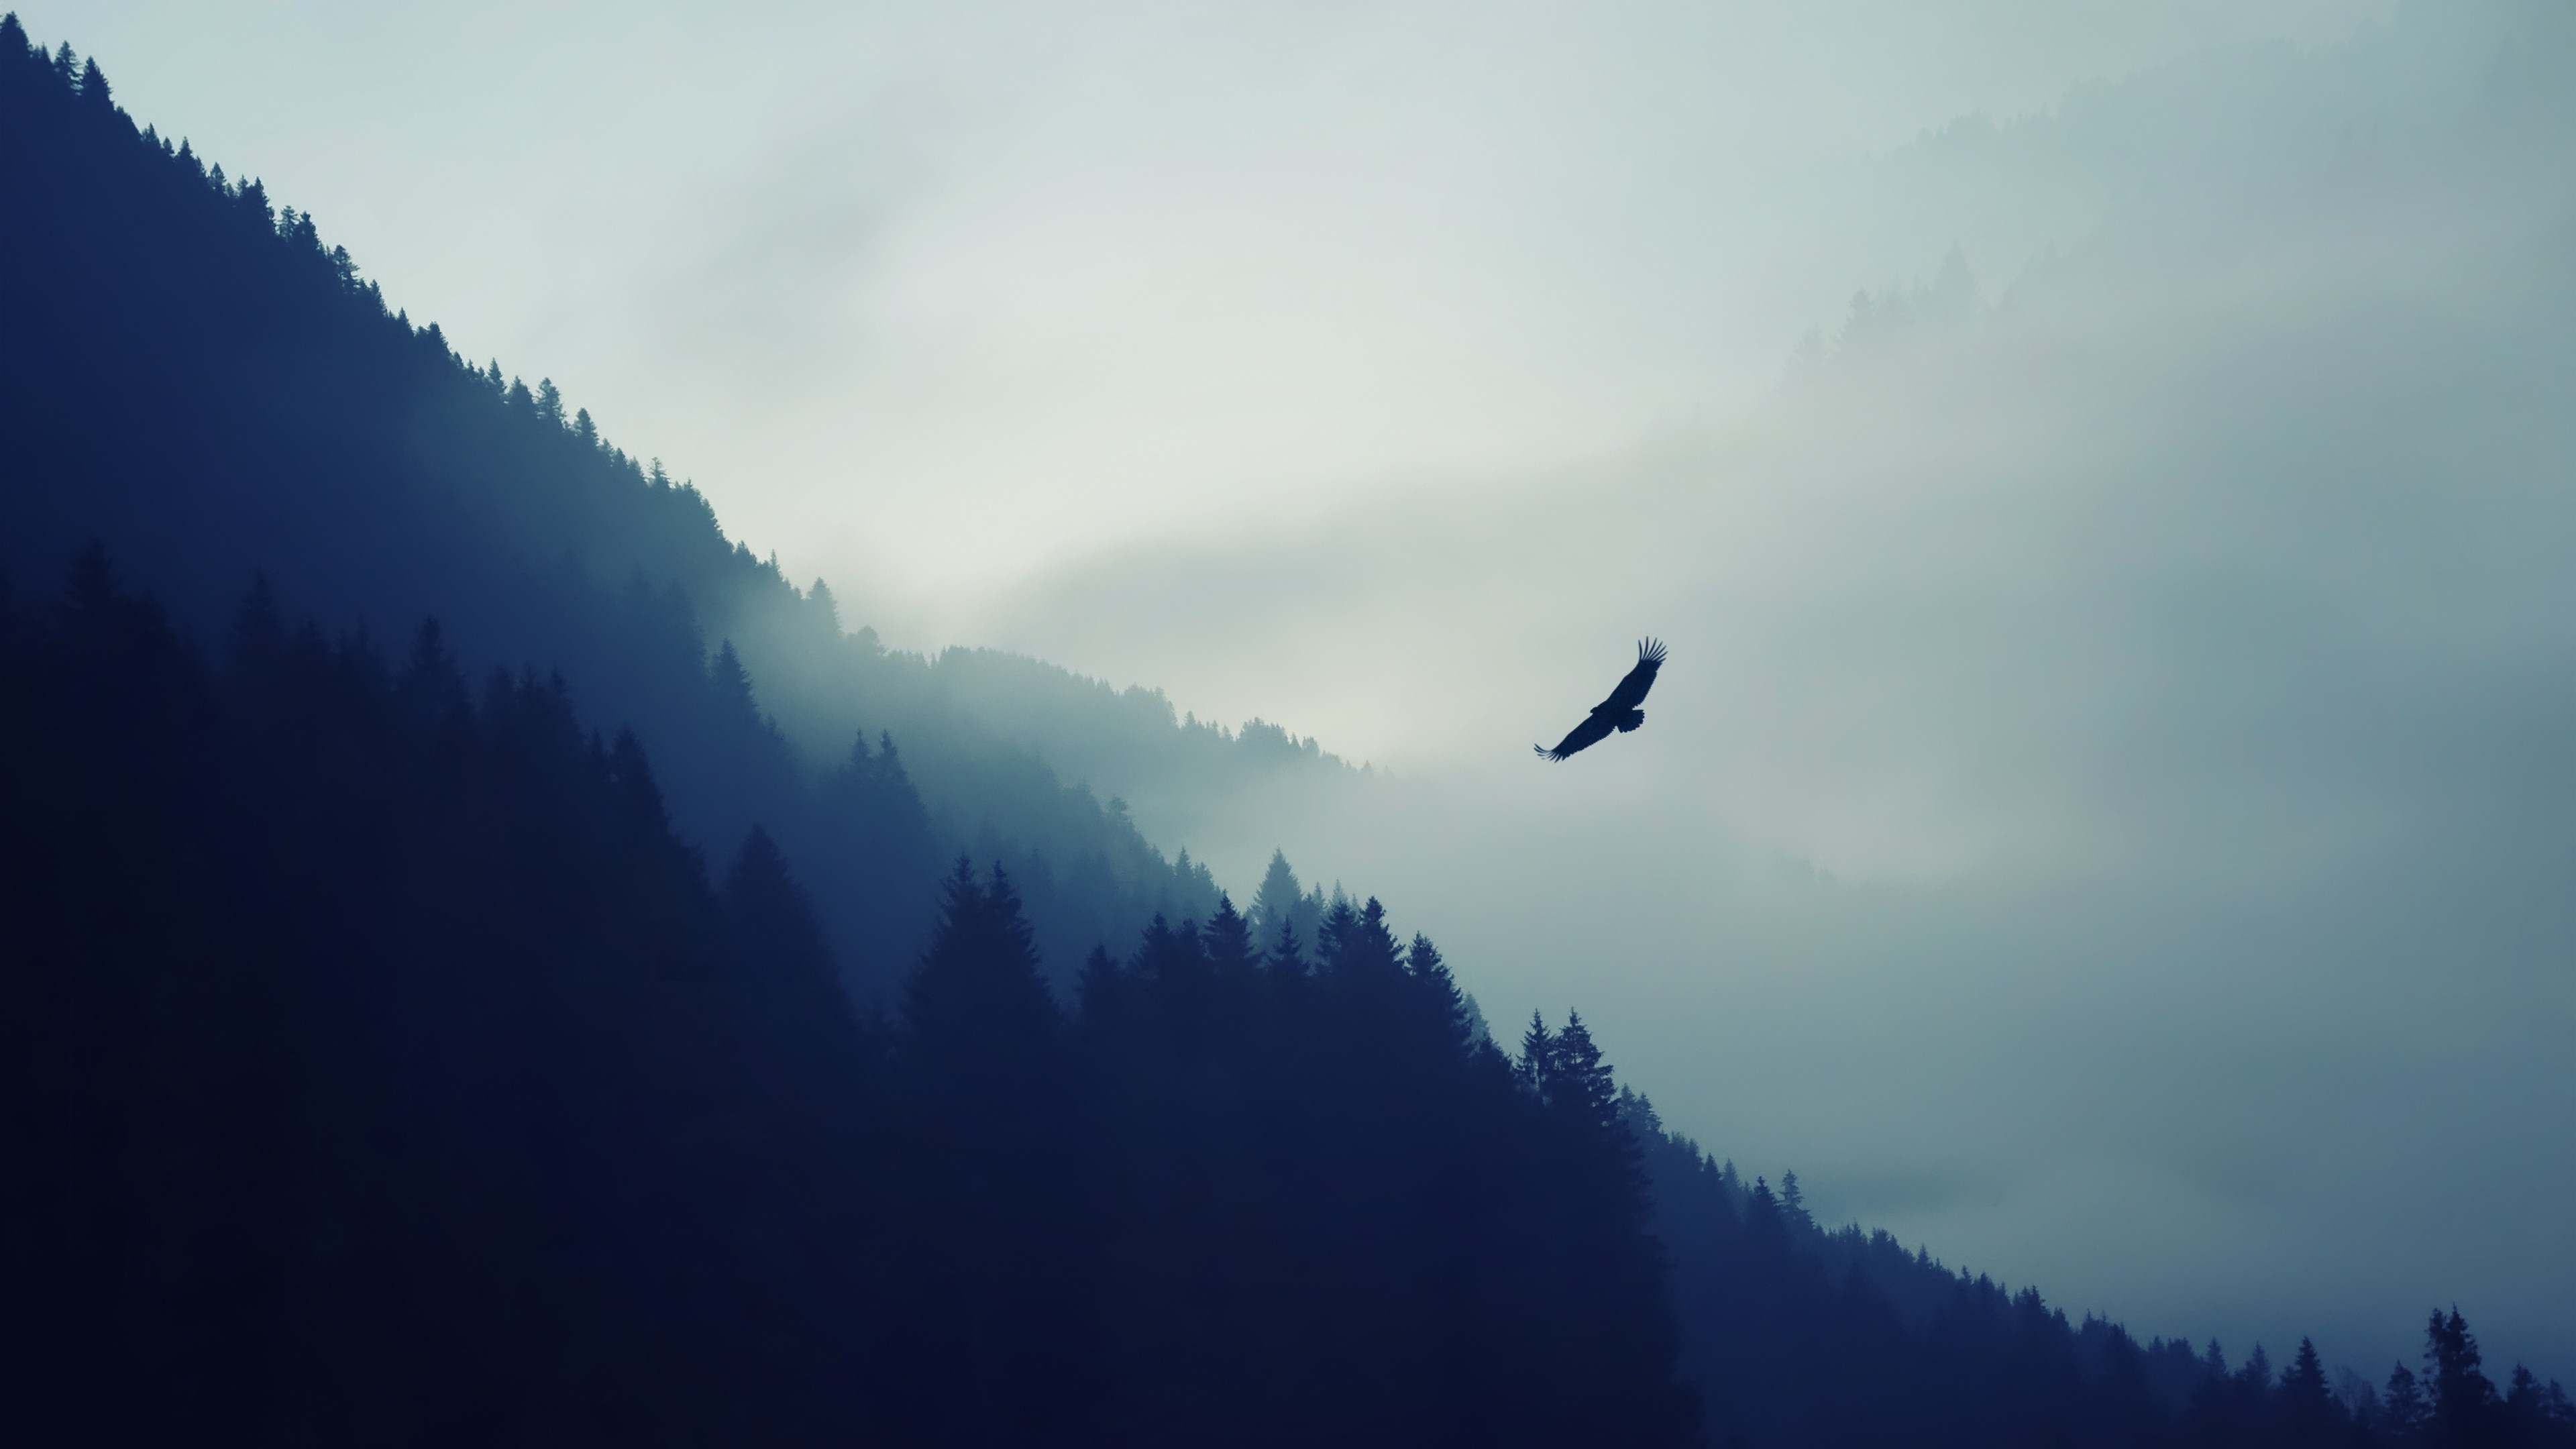 Nature Mountain Eagle Fog Landscape Ultrahd 4k Wallpaper Wallpaper